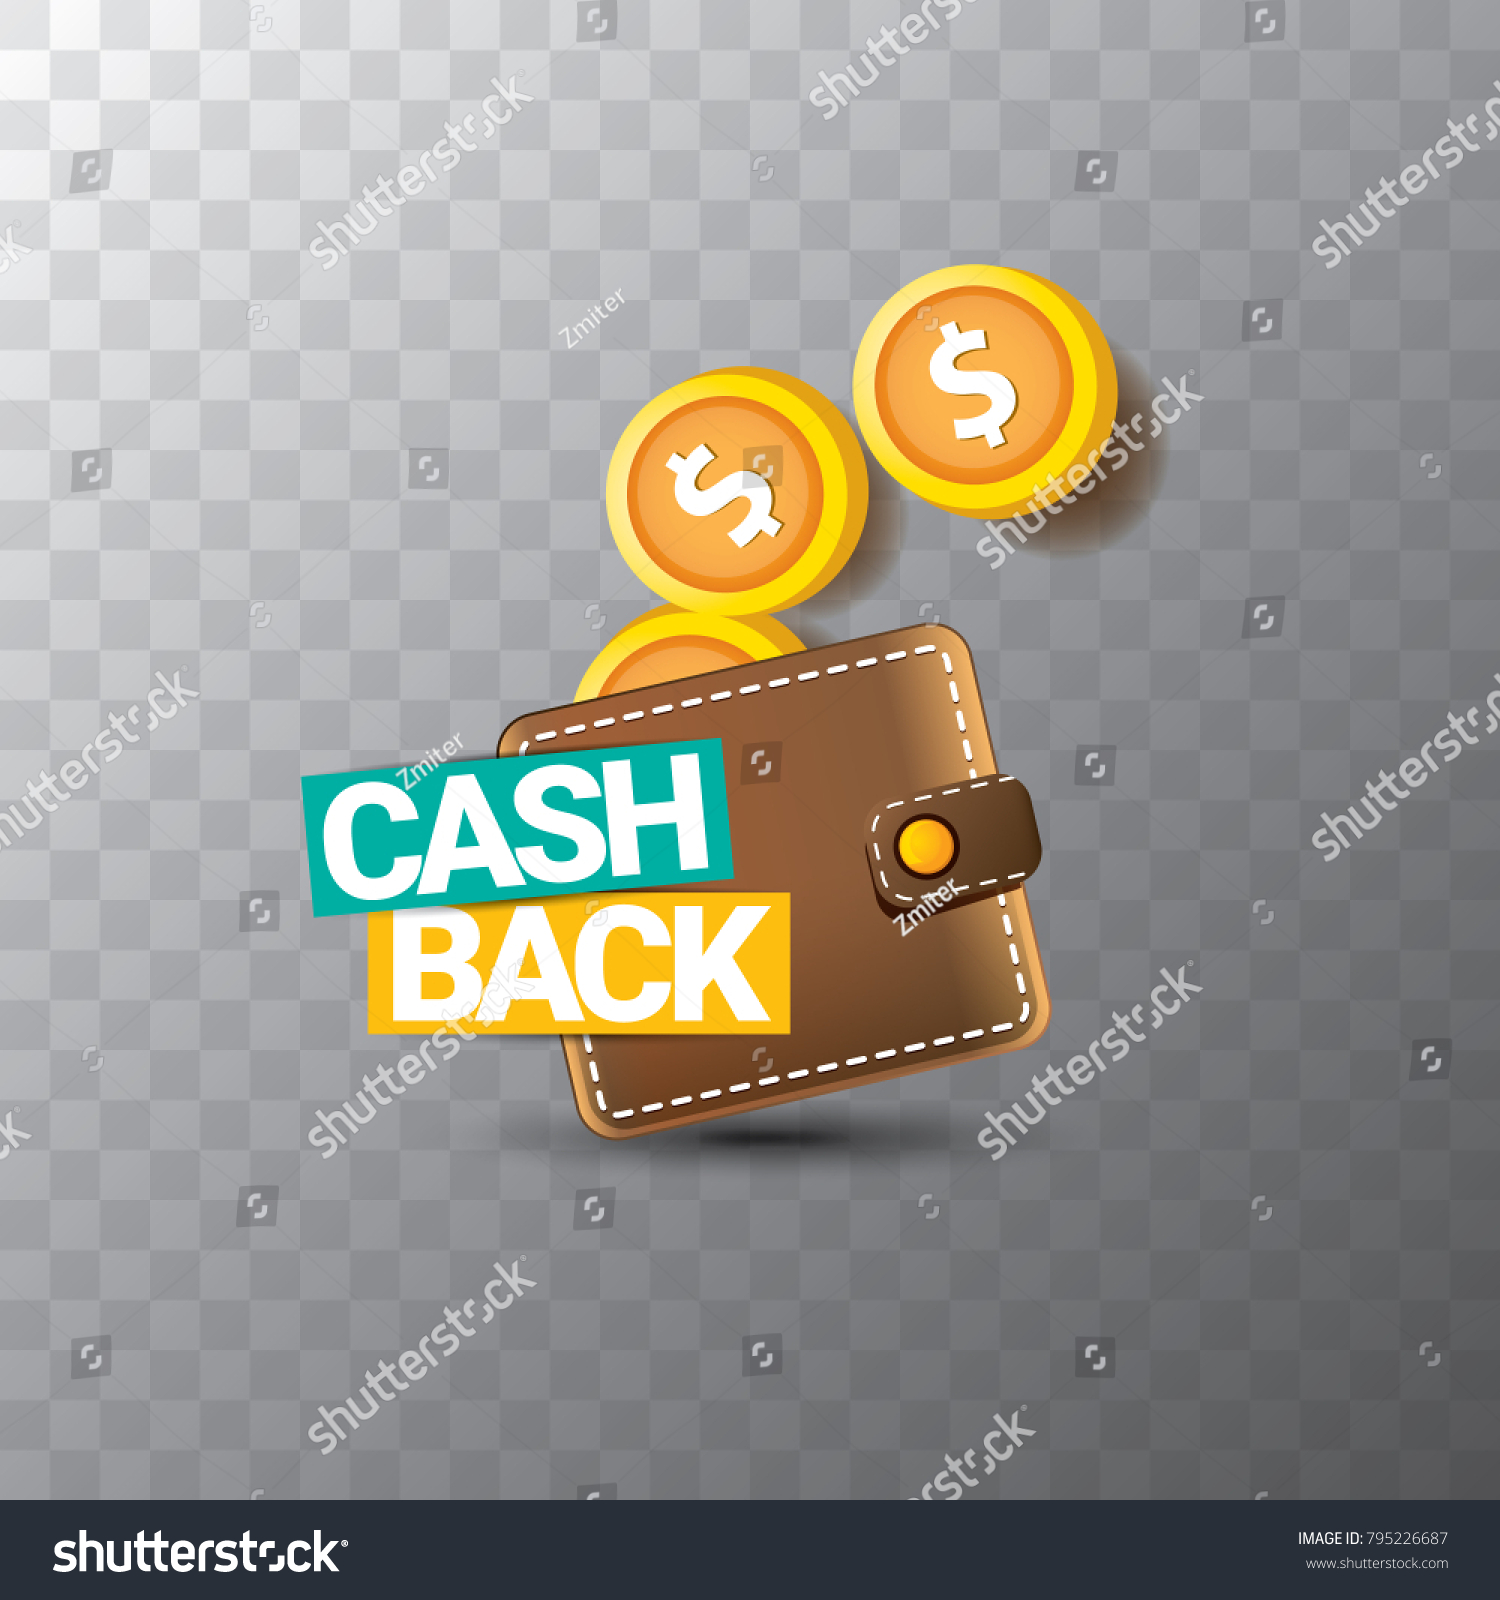 vector cash back icon golden coins stock vector royalty free 795226687 https www shutterstock com image vector vector cash back icon golden coins 795226687